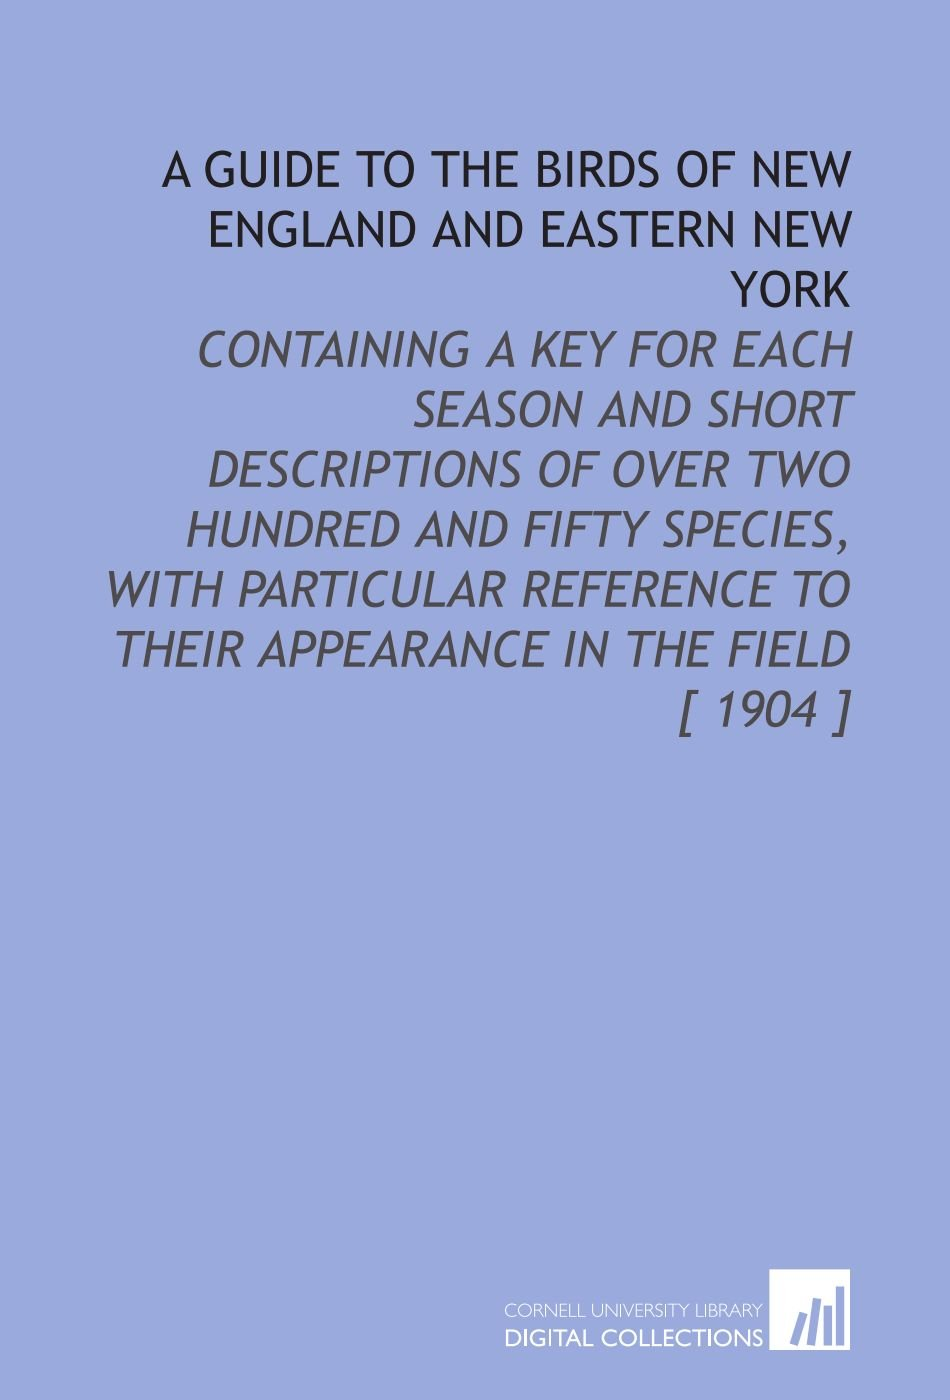 A Guide to the Birds of New England and Eastern New York: Containing a Key for Each Season and Short Descriptions of Over Two Hundred and Fifty ... to Their Appearance in the Field [ 1904 ] pdf